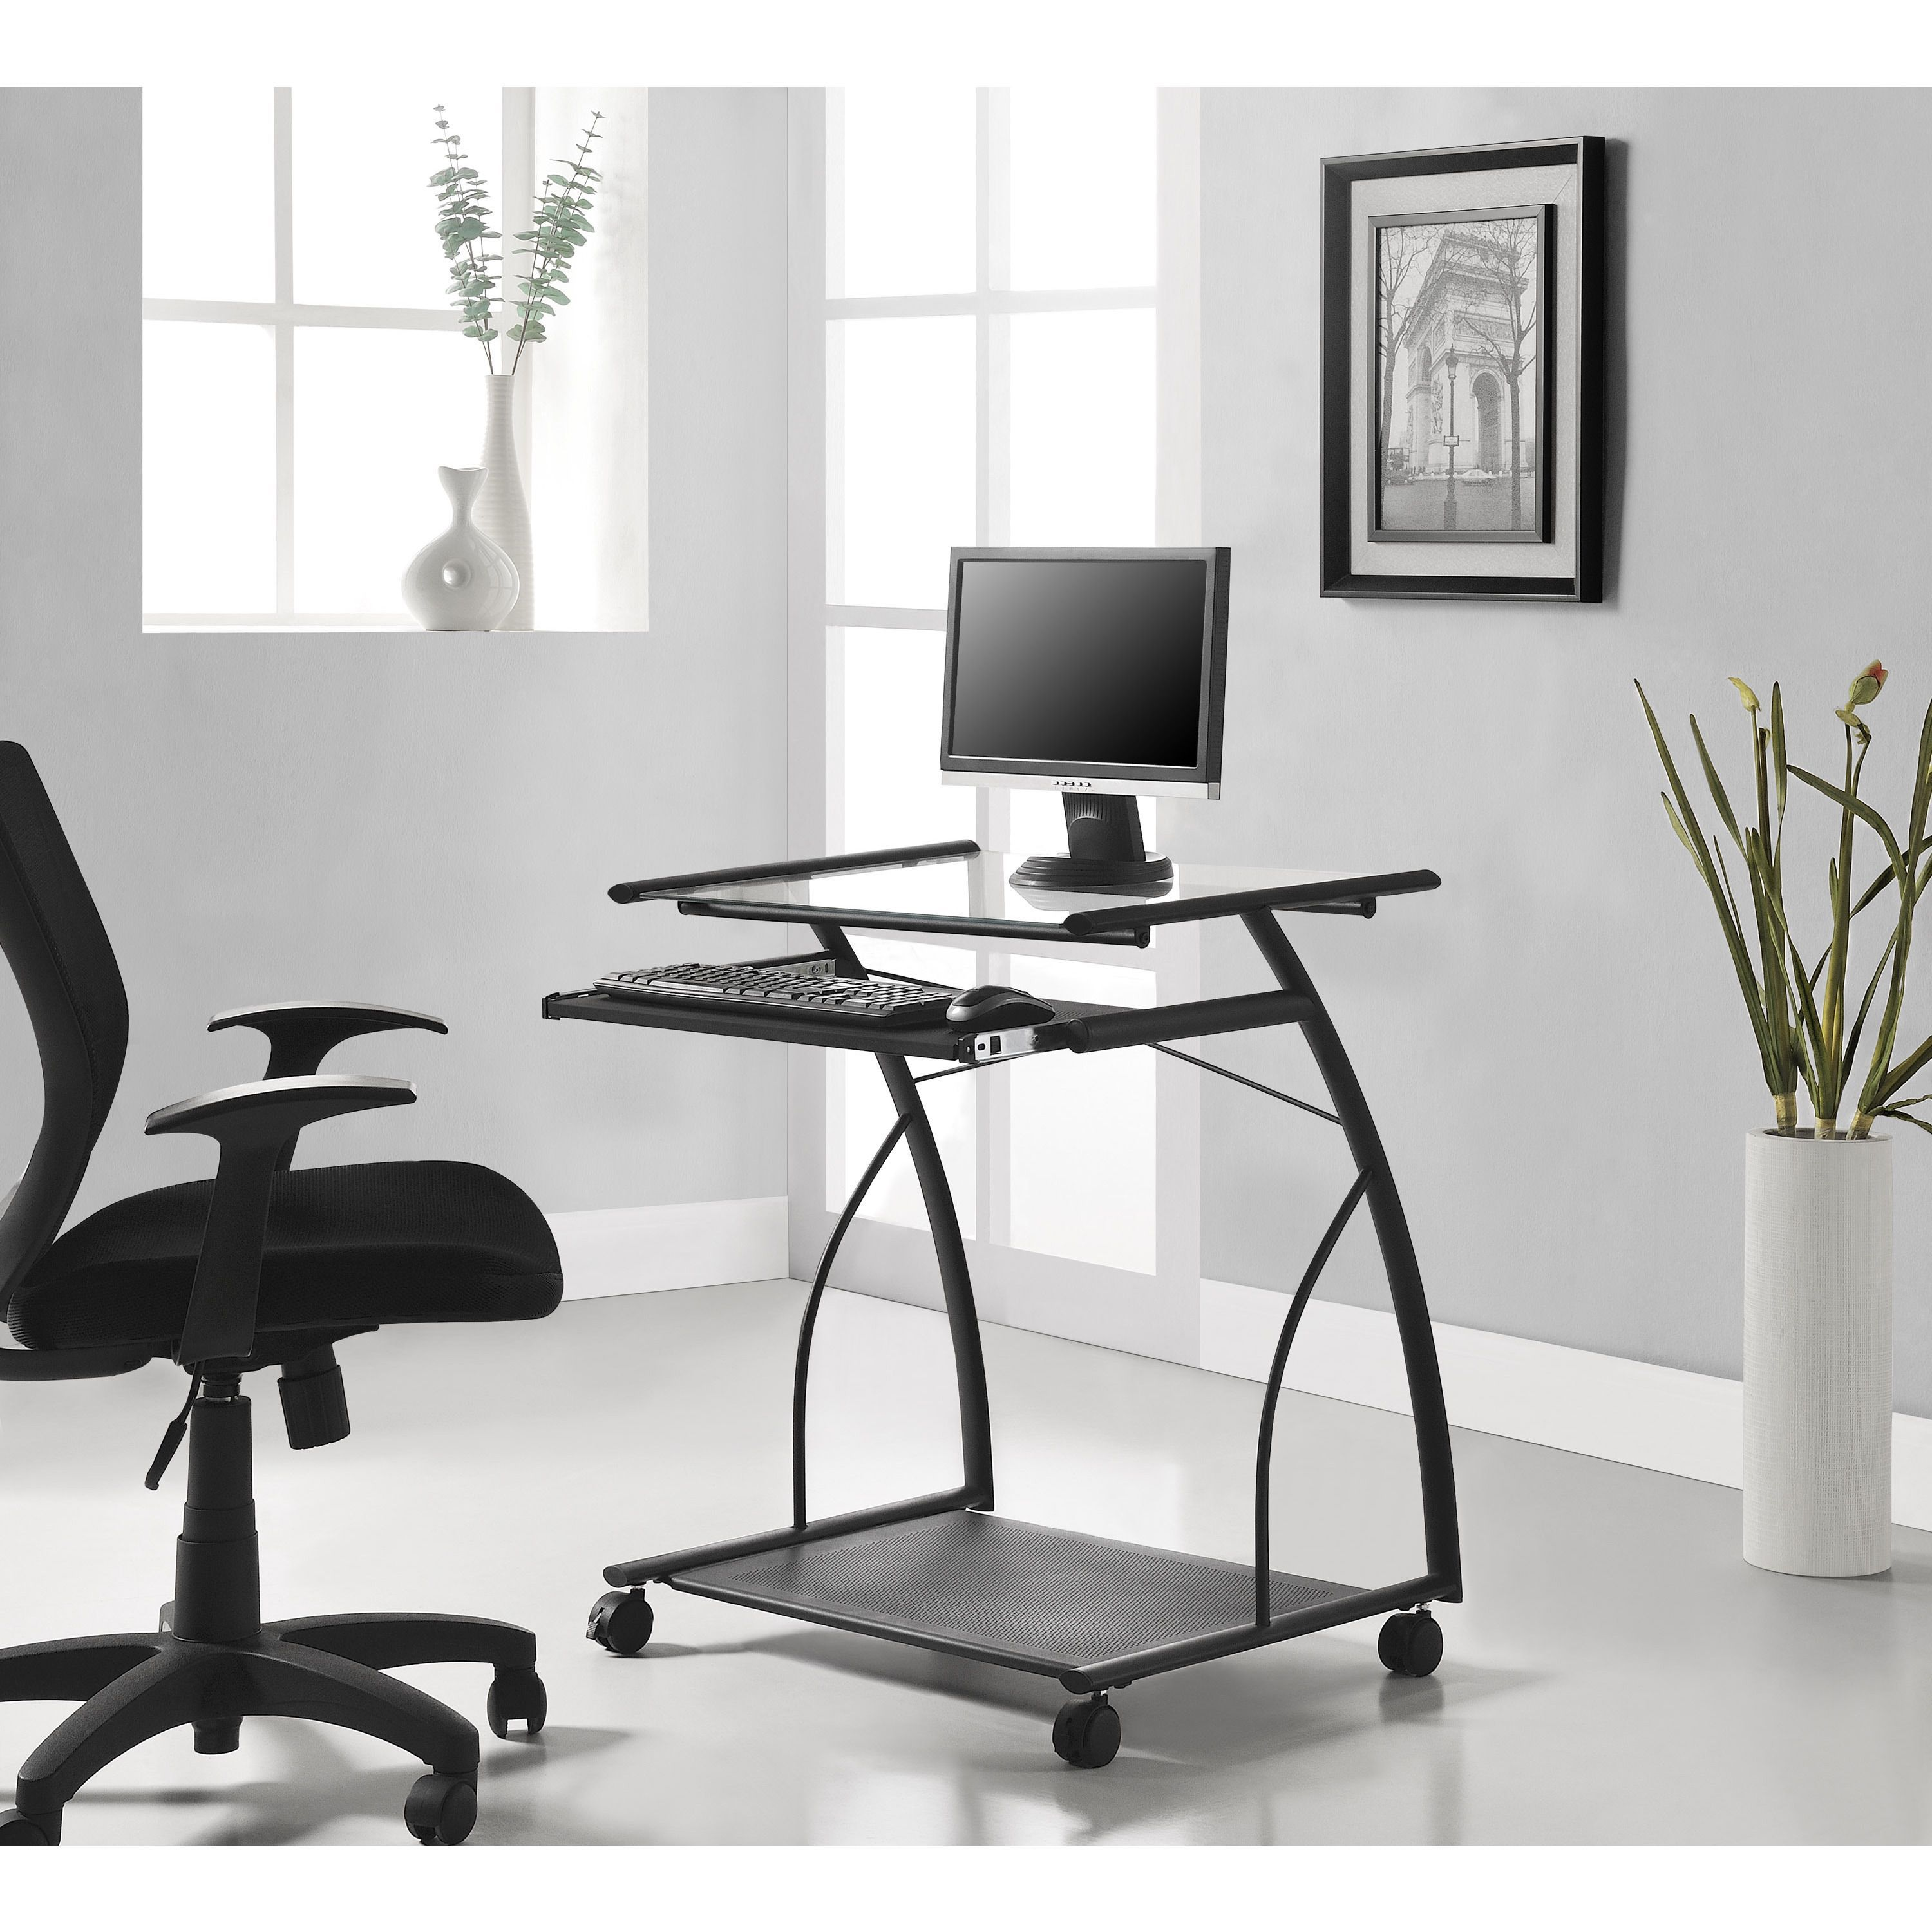 Sleek and space-saving, this smart computer desk features 4 wheels ...